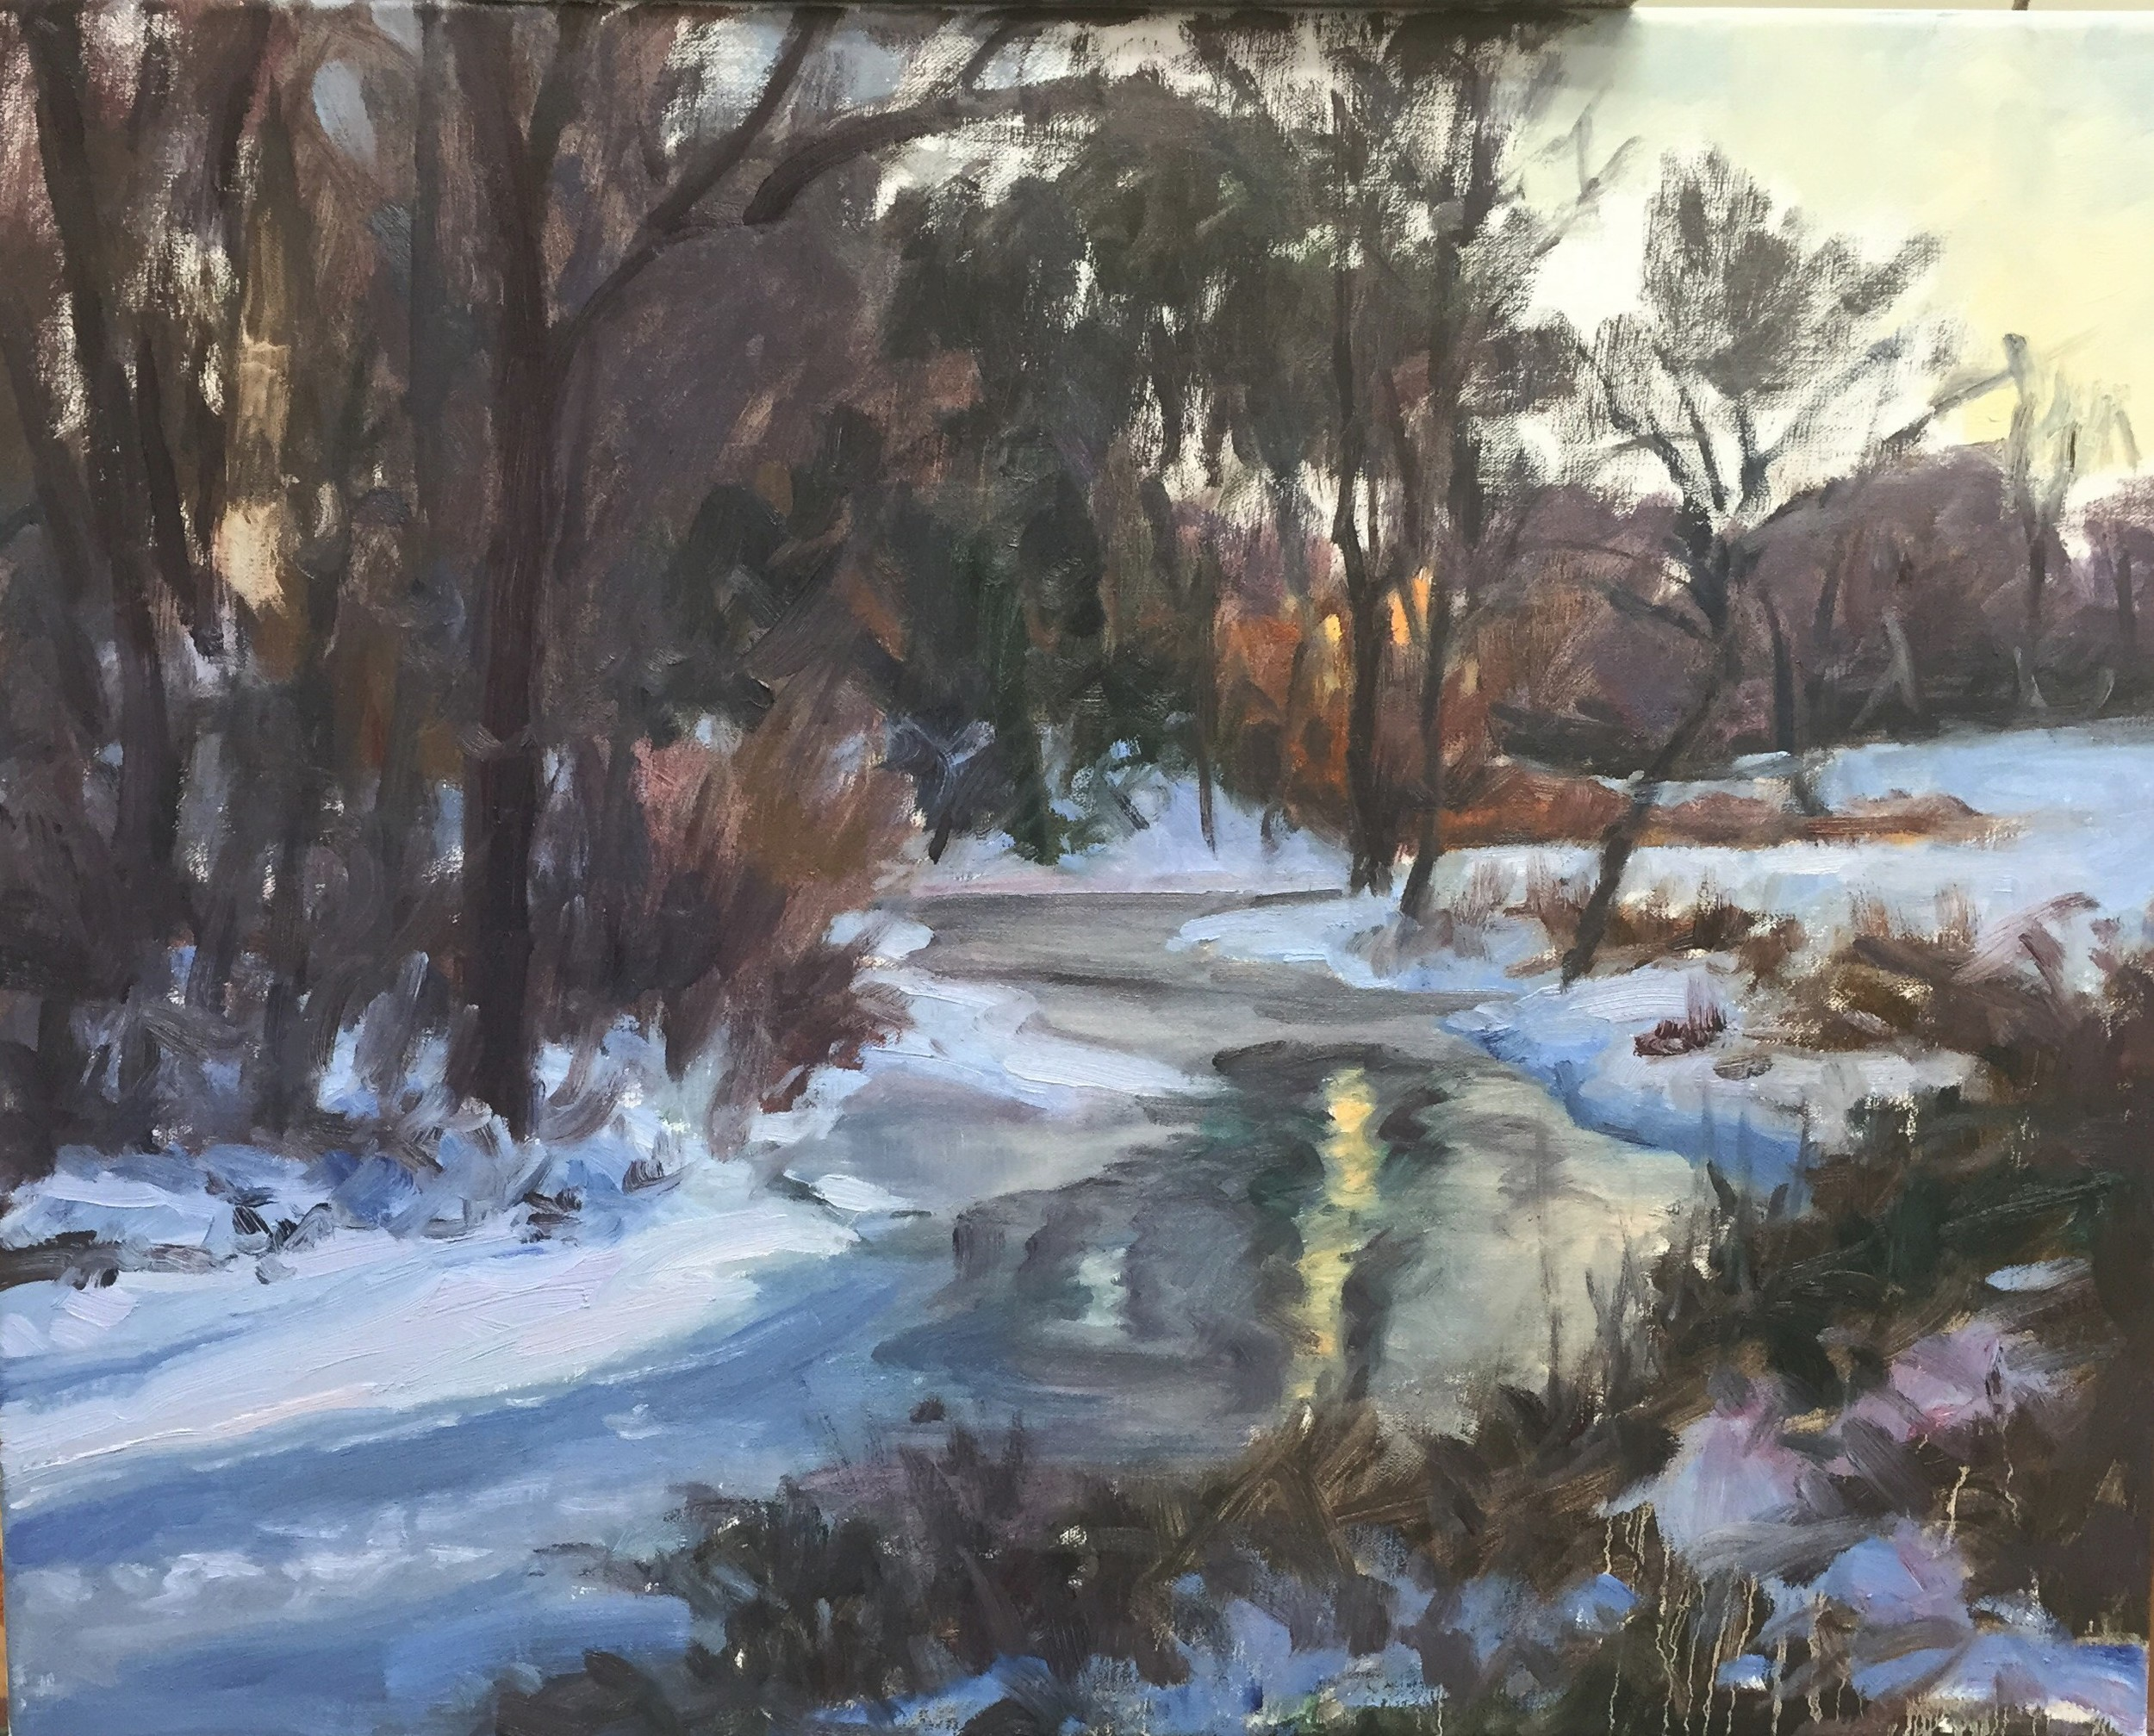 Winter landscape painting in progress by Jennifer E Young